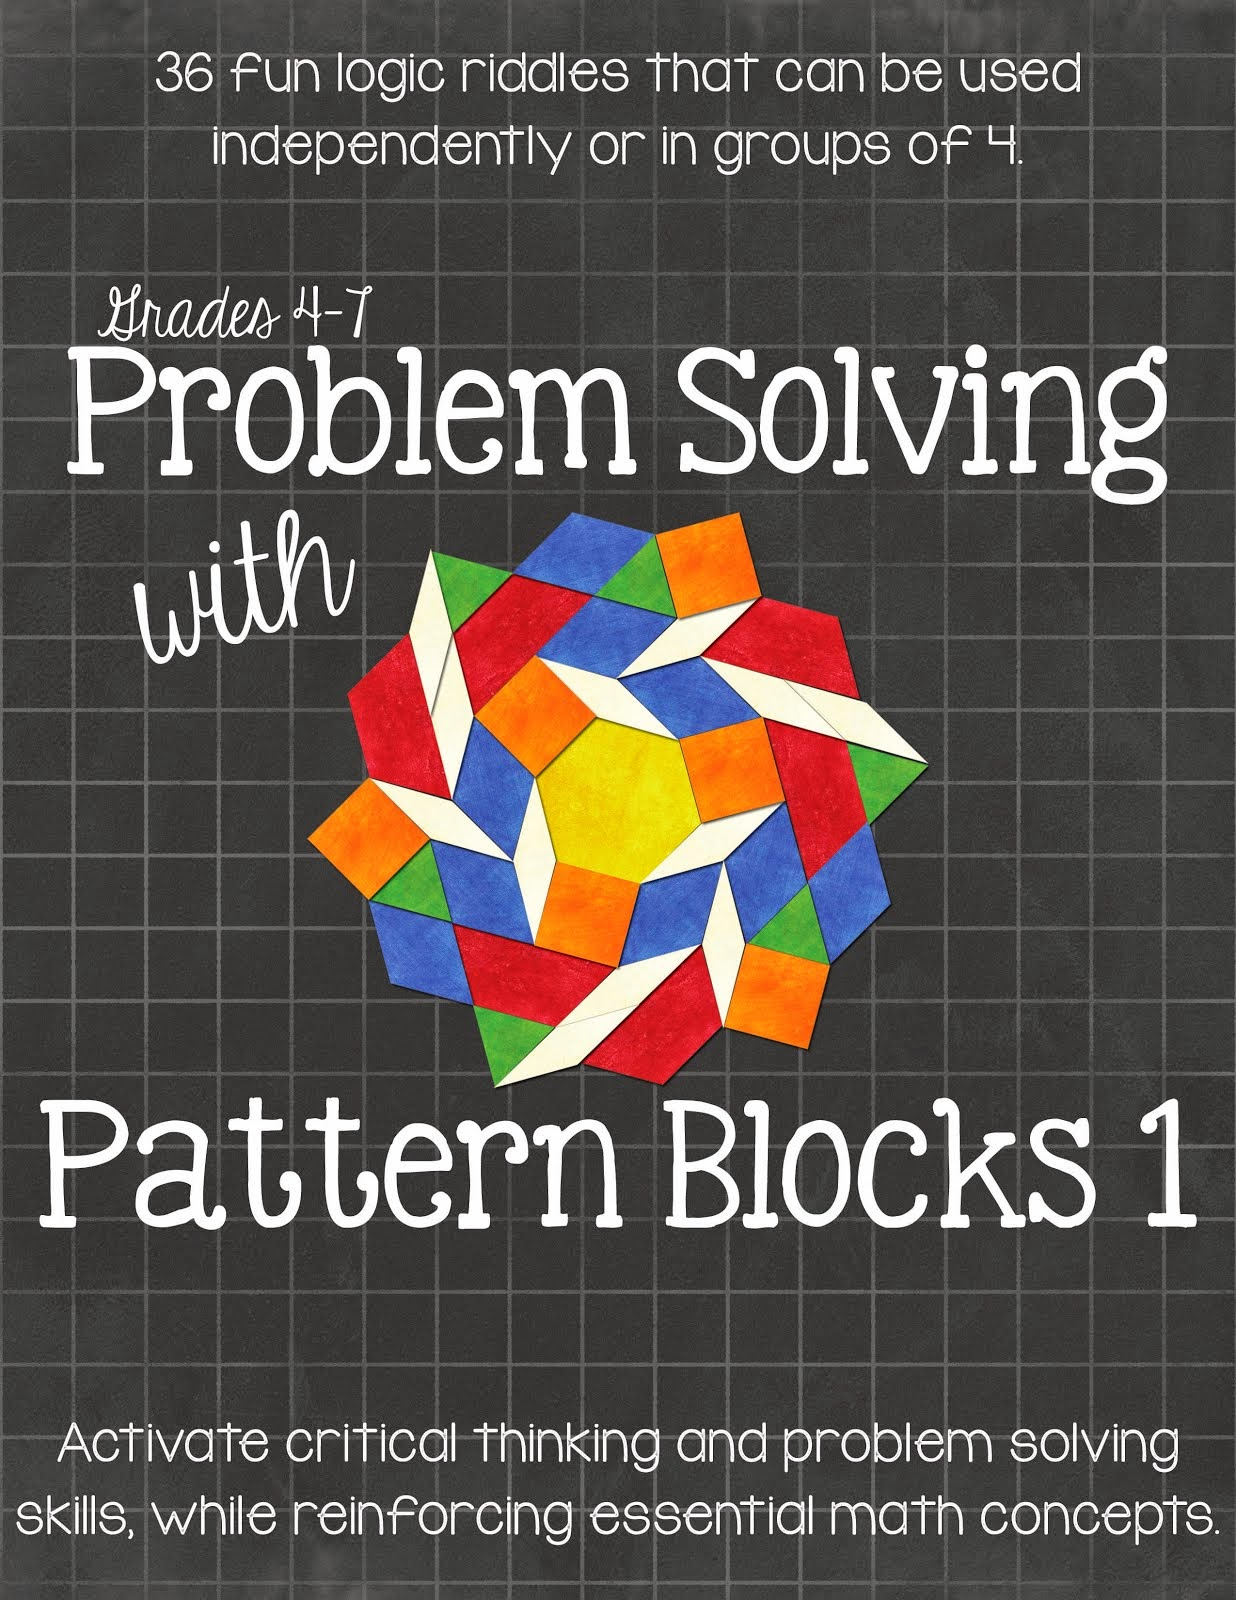 critical thinking mathematics problems Free lesson plans and resources for creativity, problem solving, and critical thinking  free math problems, puzzles, word games, brainteasers, and.